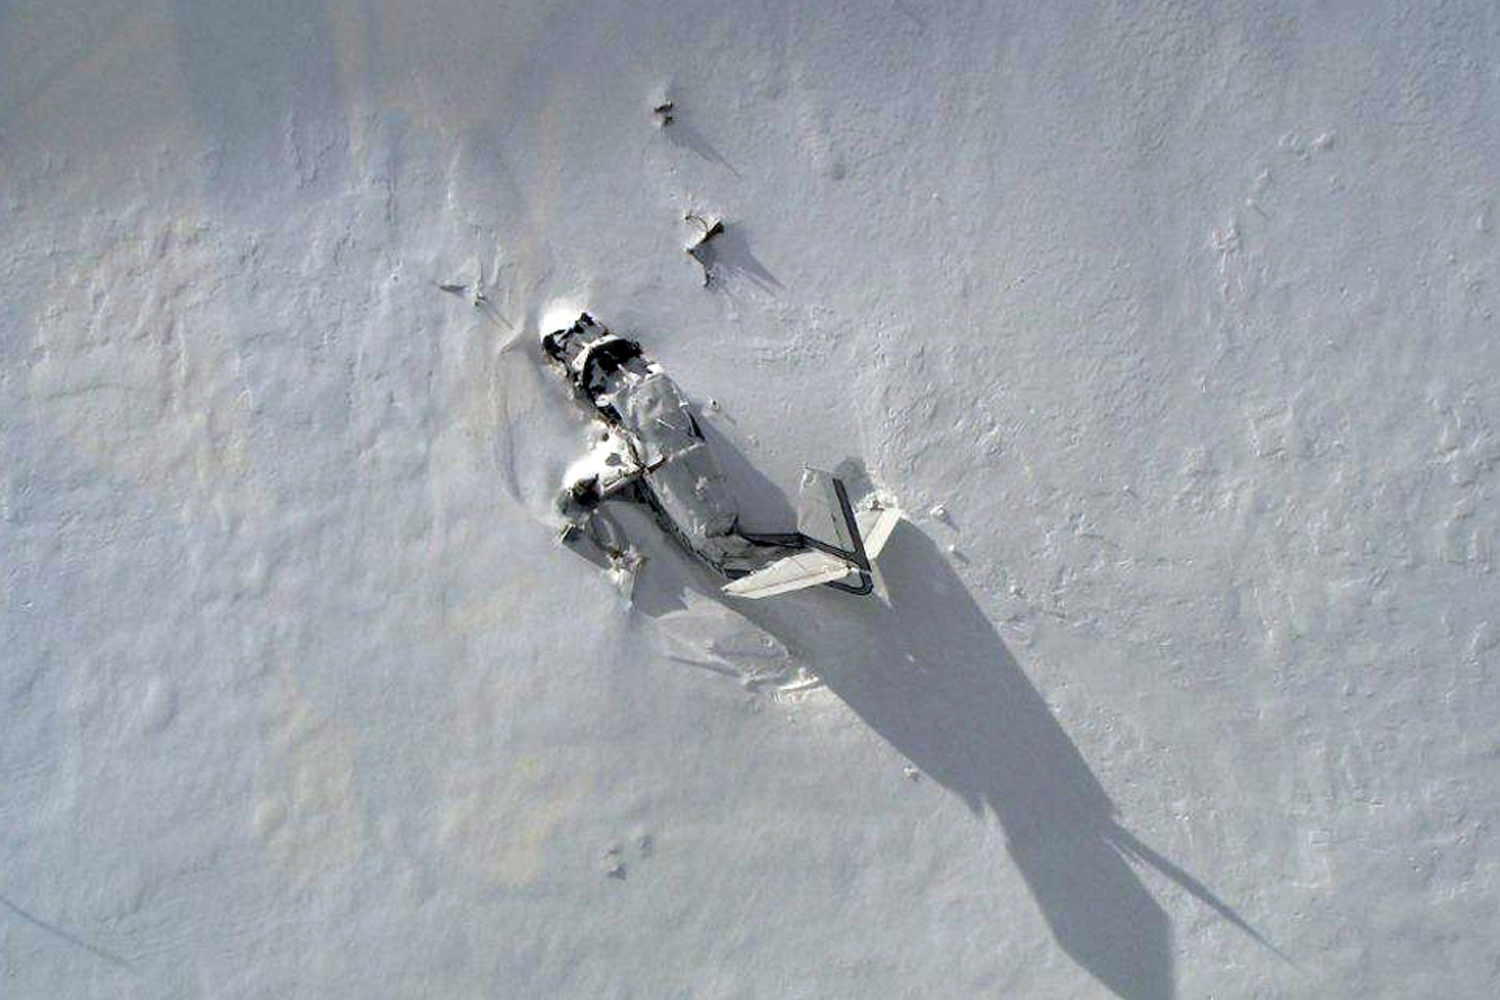 May 12, 2014. This photo provided by the Park County, Wyo., Sheriff's Office shows the wreckage of a single-engine plane on a rugged, snowy mountain outside of Yellowstone National Park Monday.